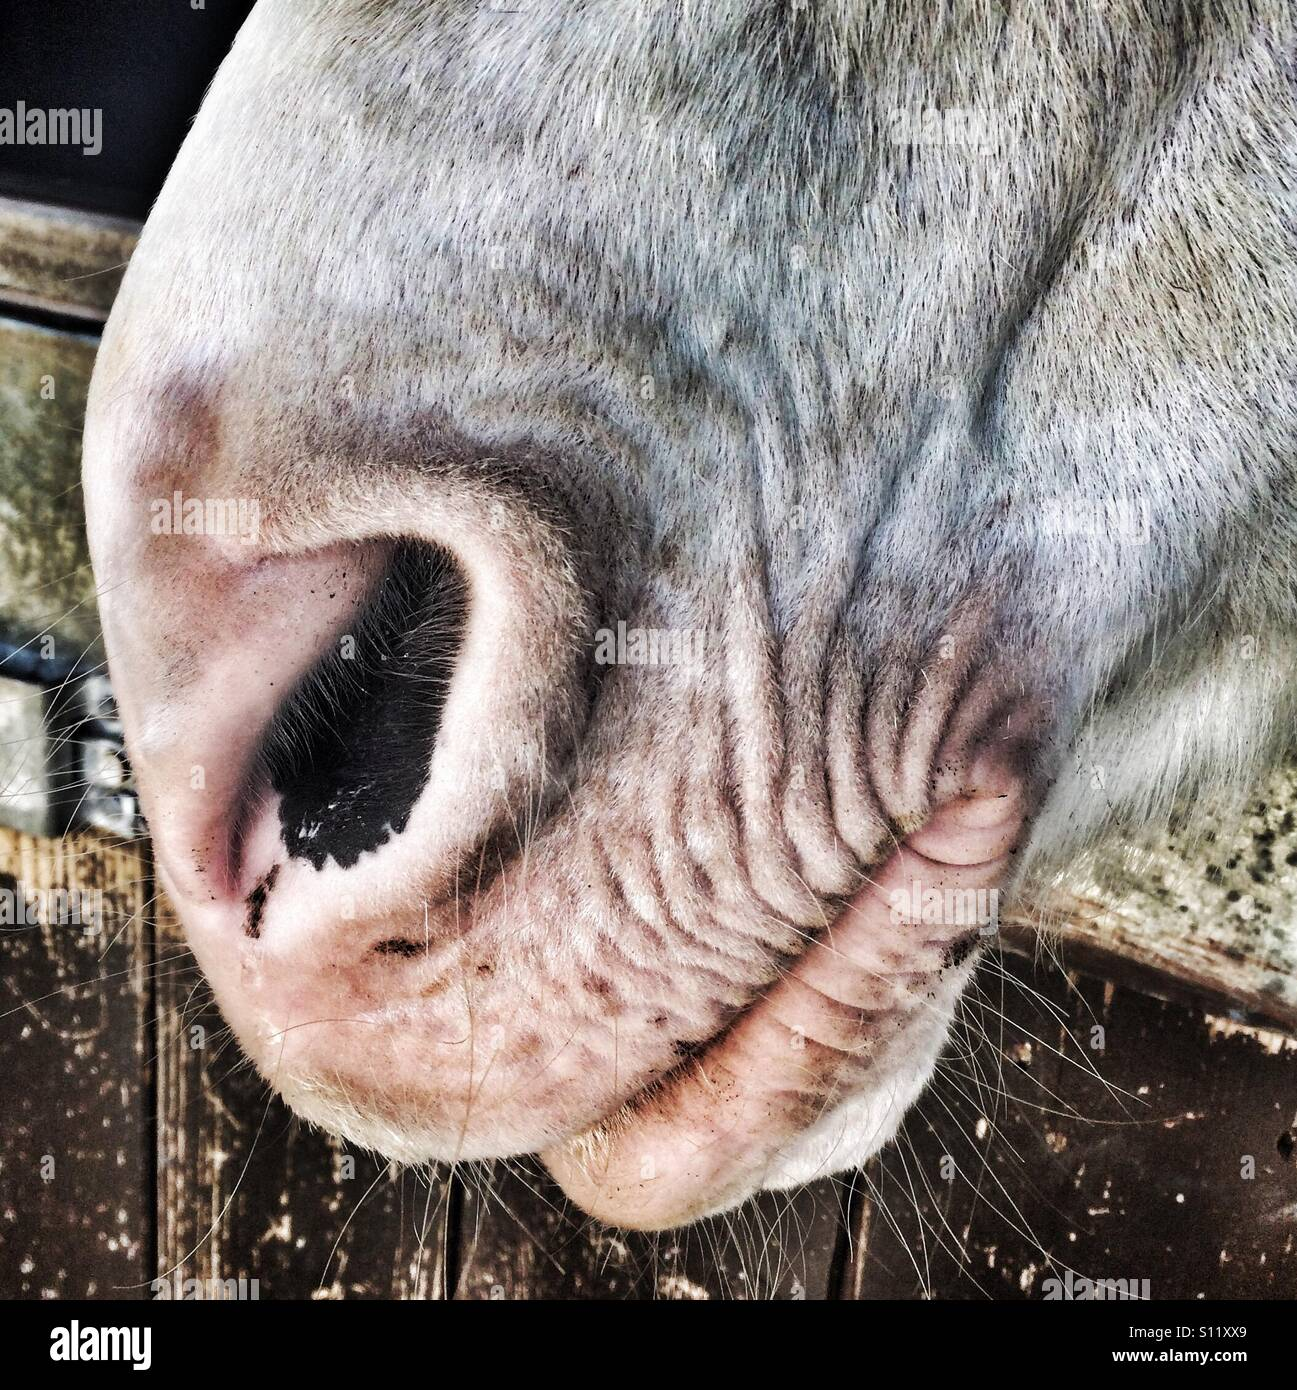 A close up of a horses mouth - Stock Image